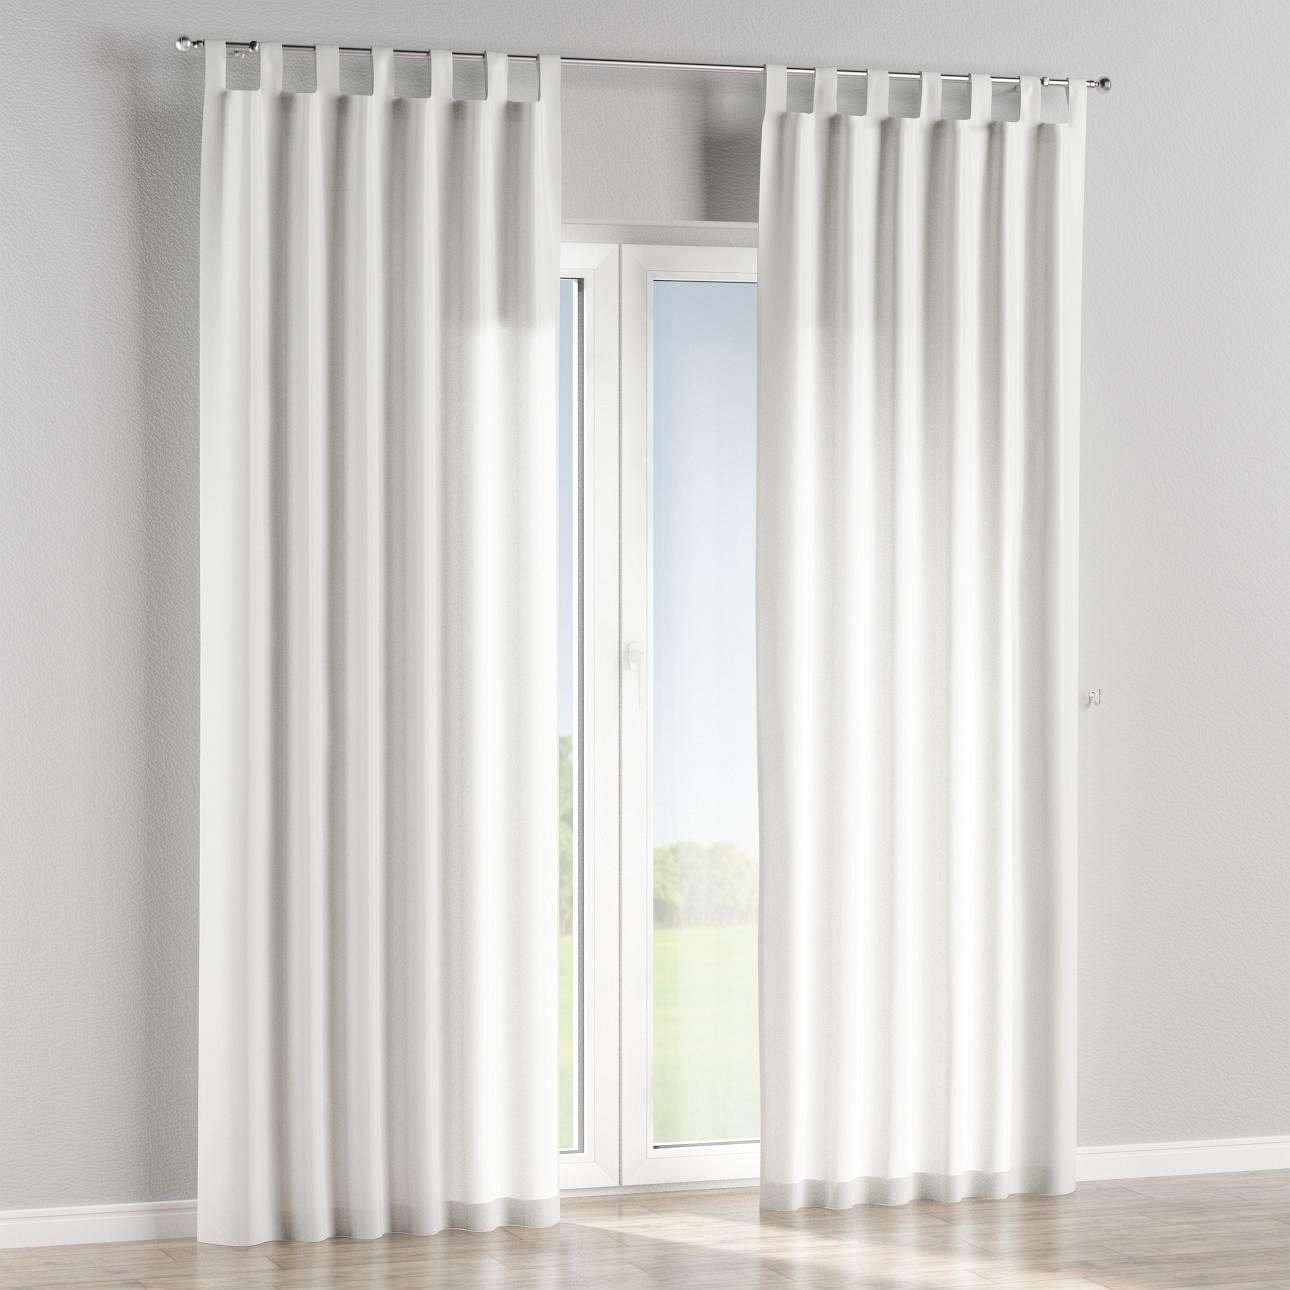 Tab top curtains in collection SALE, fabric: 130-10